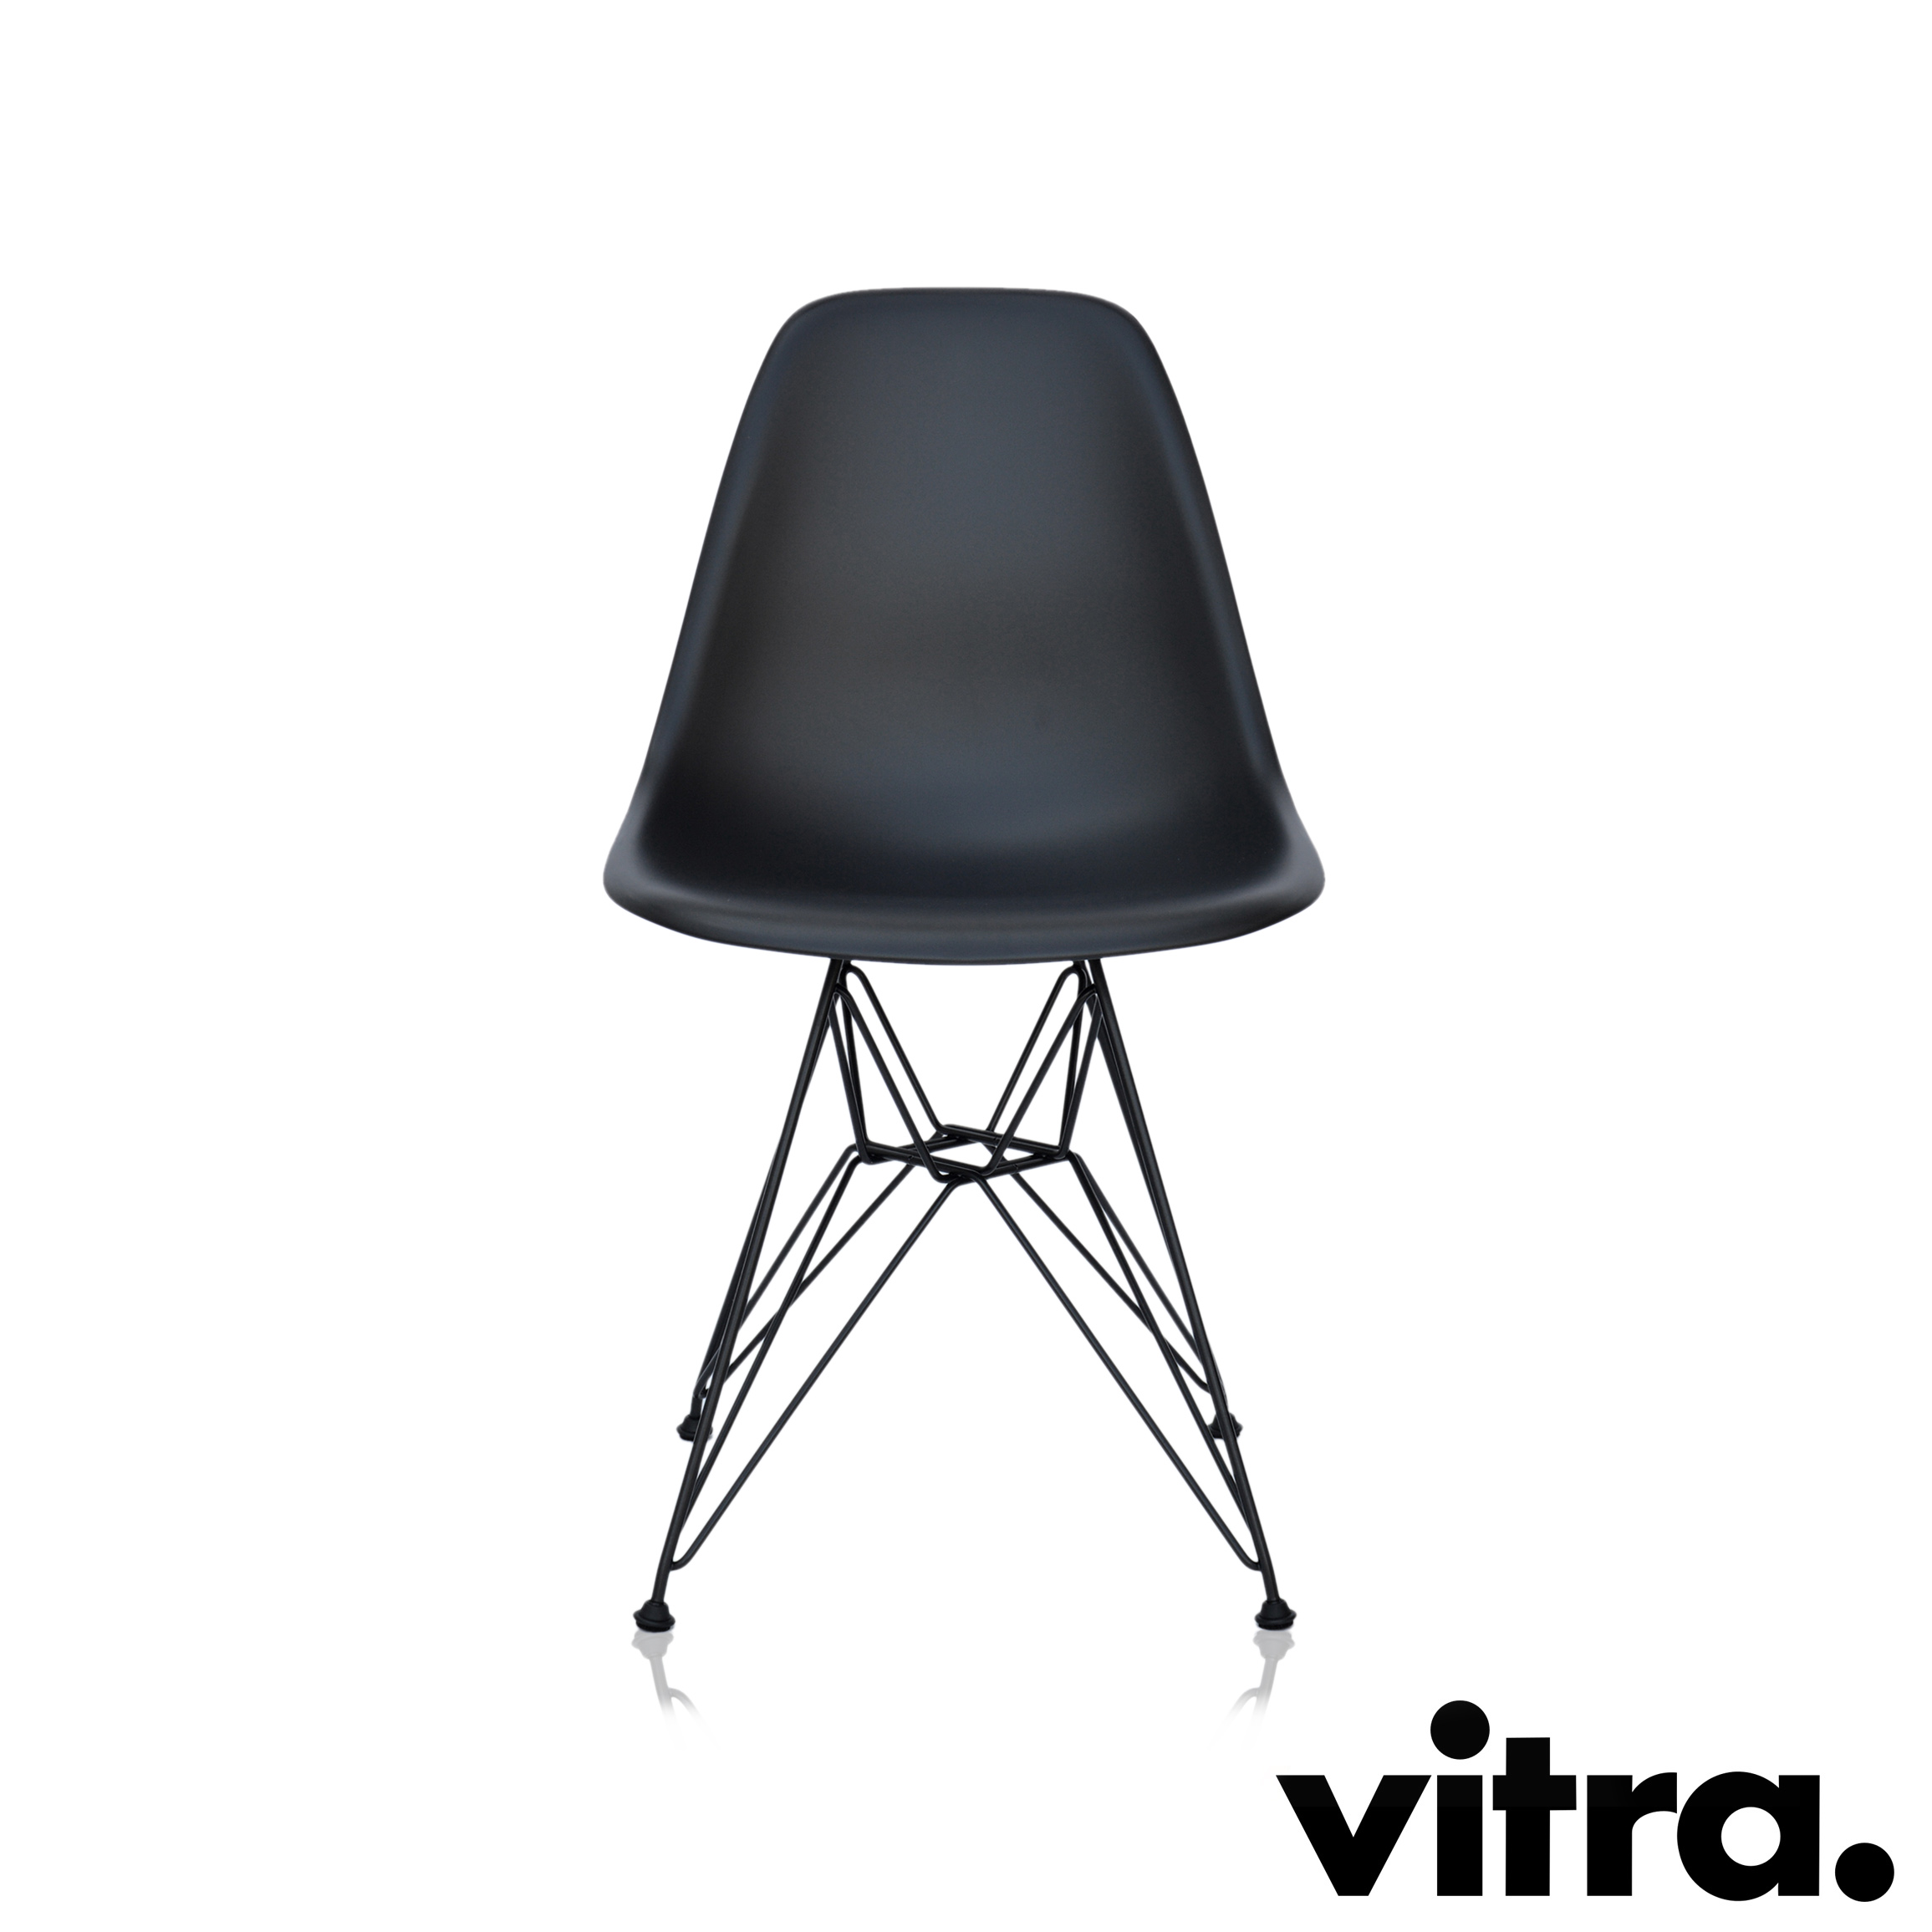 Plastic Darkoutdoor Side Basic Eames Vitra Dsr Chair L5ARj34